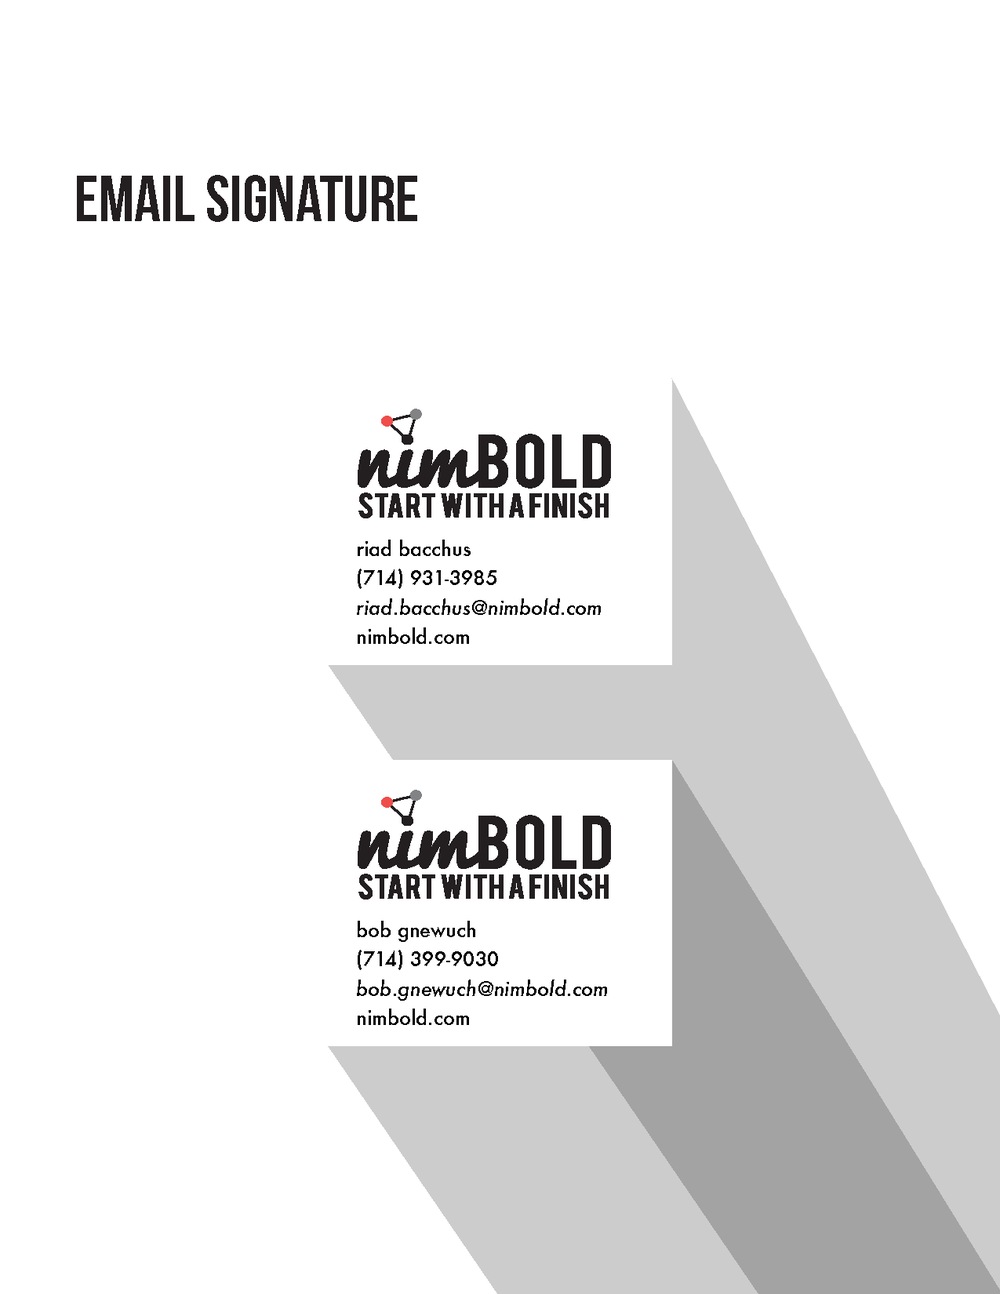 the-four-design-nimbold-identity-system-25.png